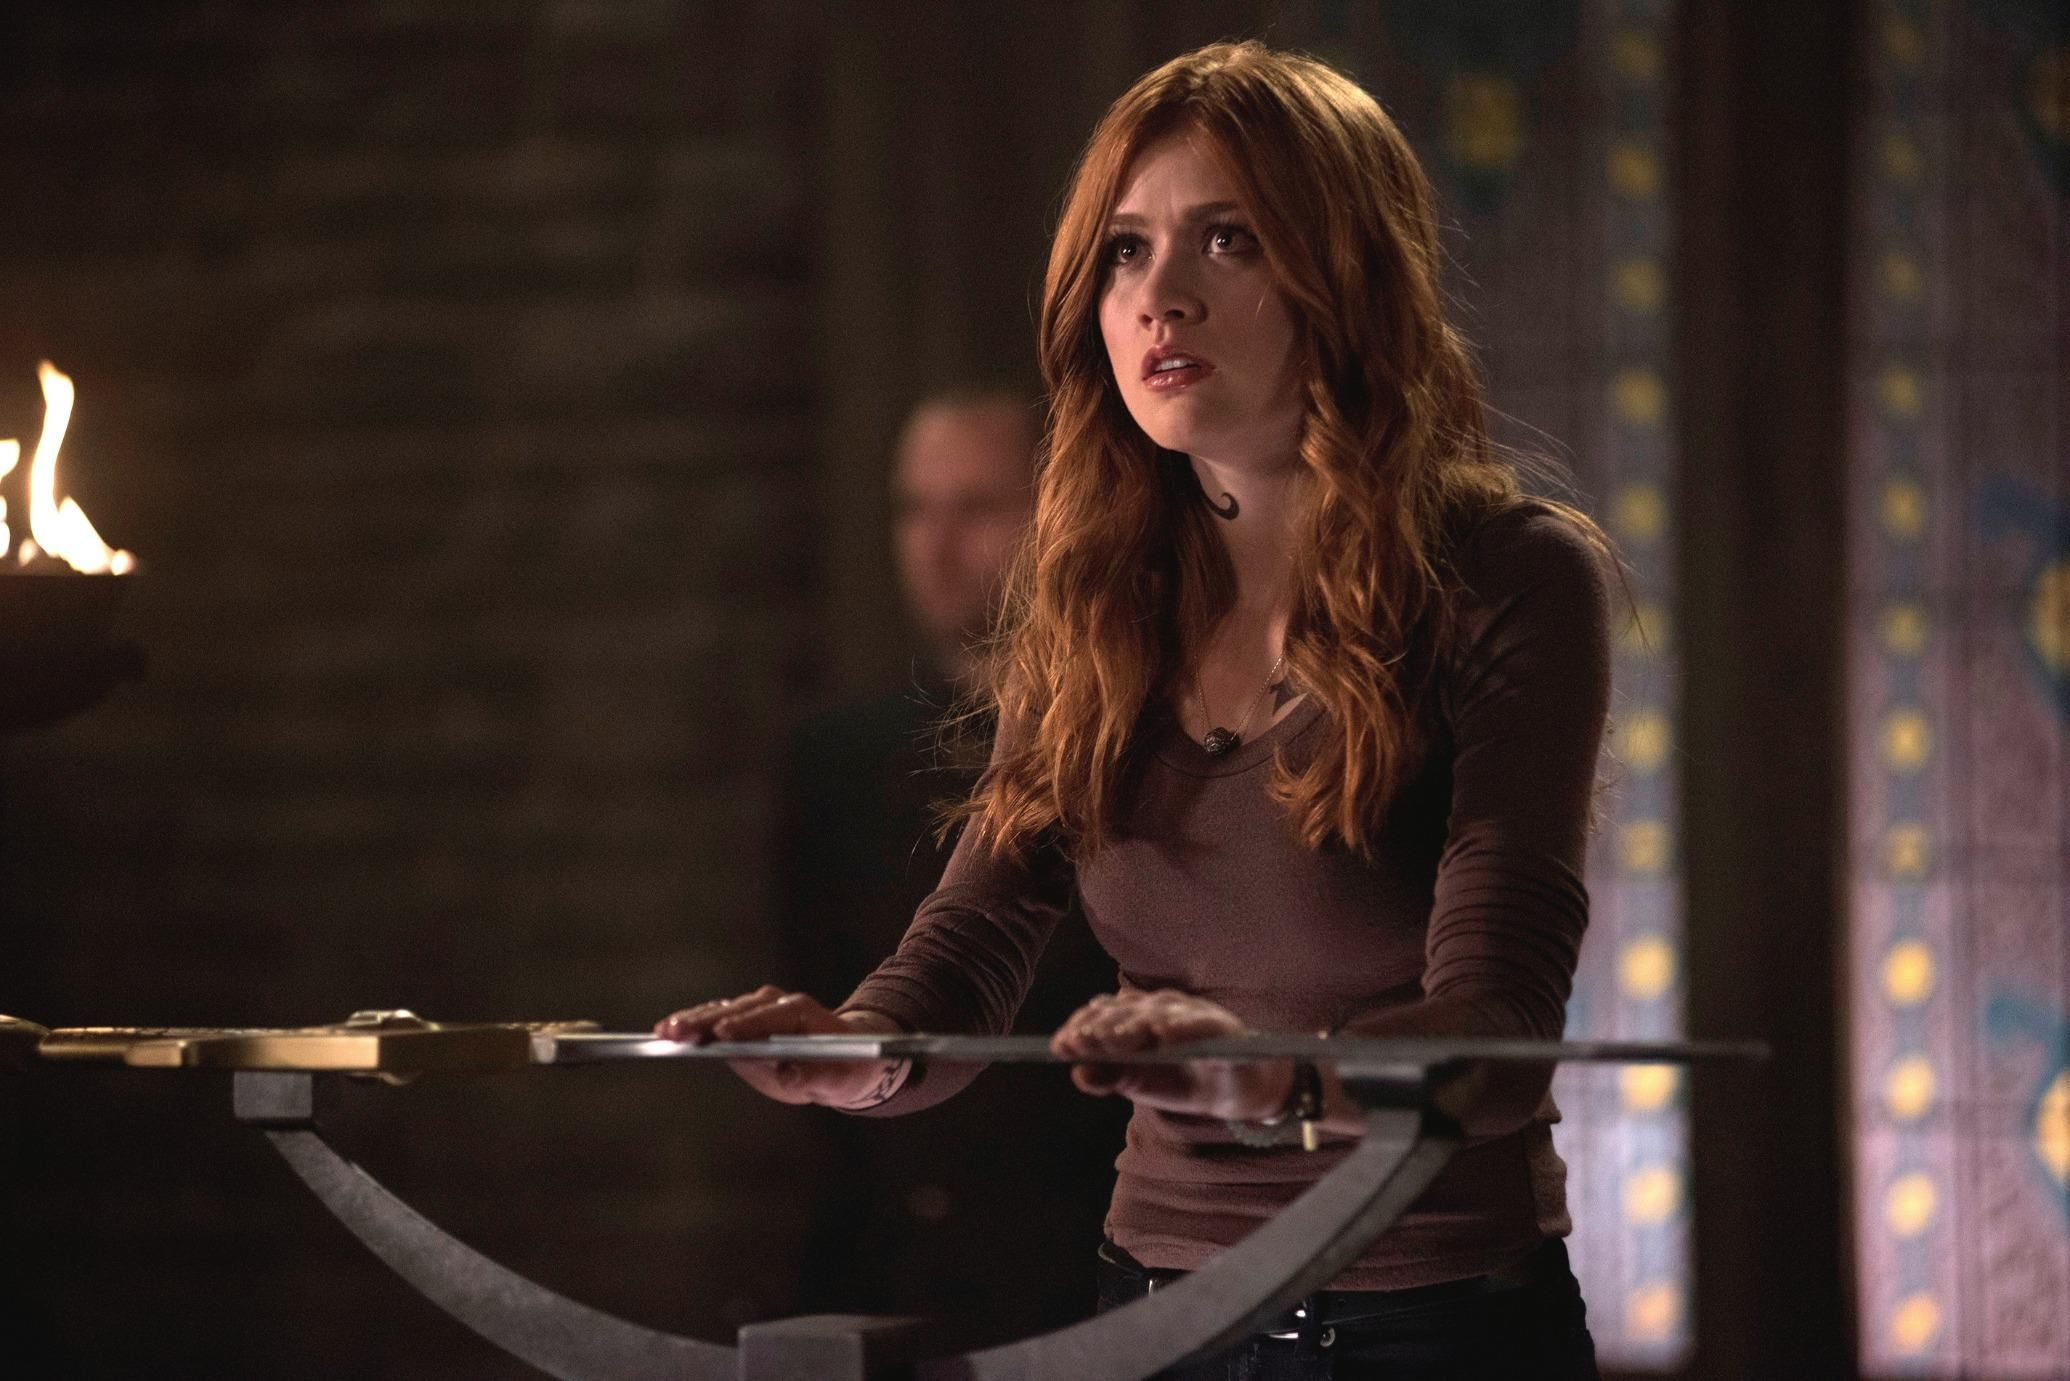 In the TV series, Shadow Hunters, Katherine McNamara portrays the role of Clary Fray. Who played the role in the movie adaptation? 28